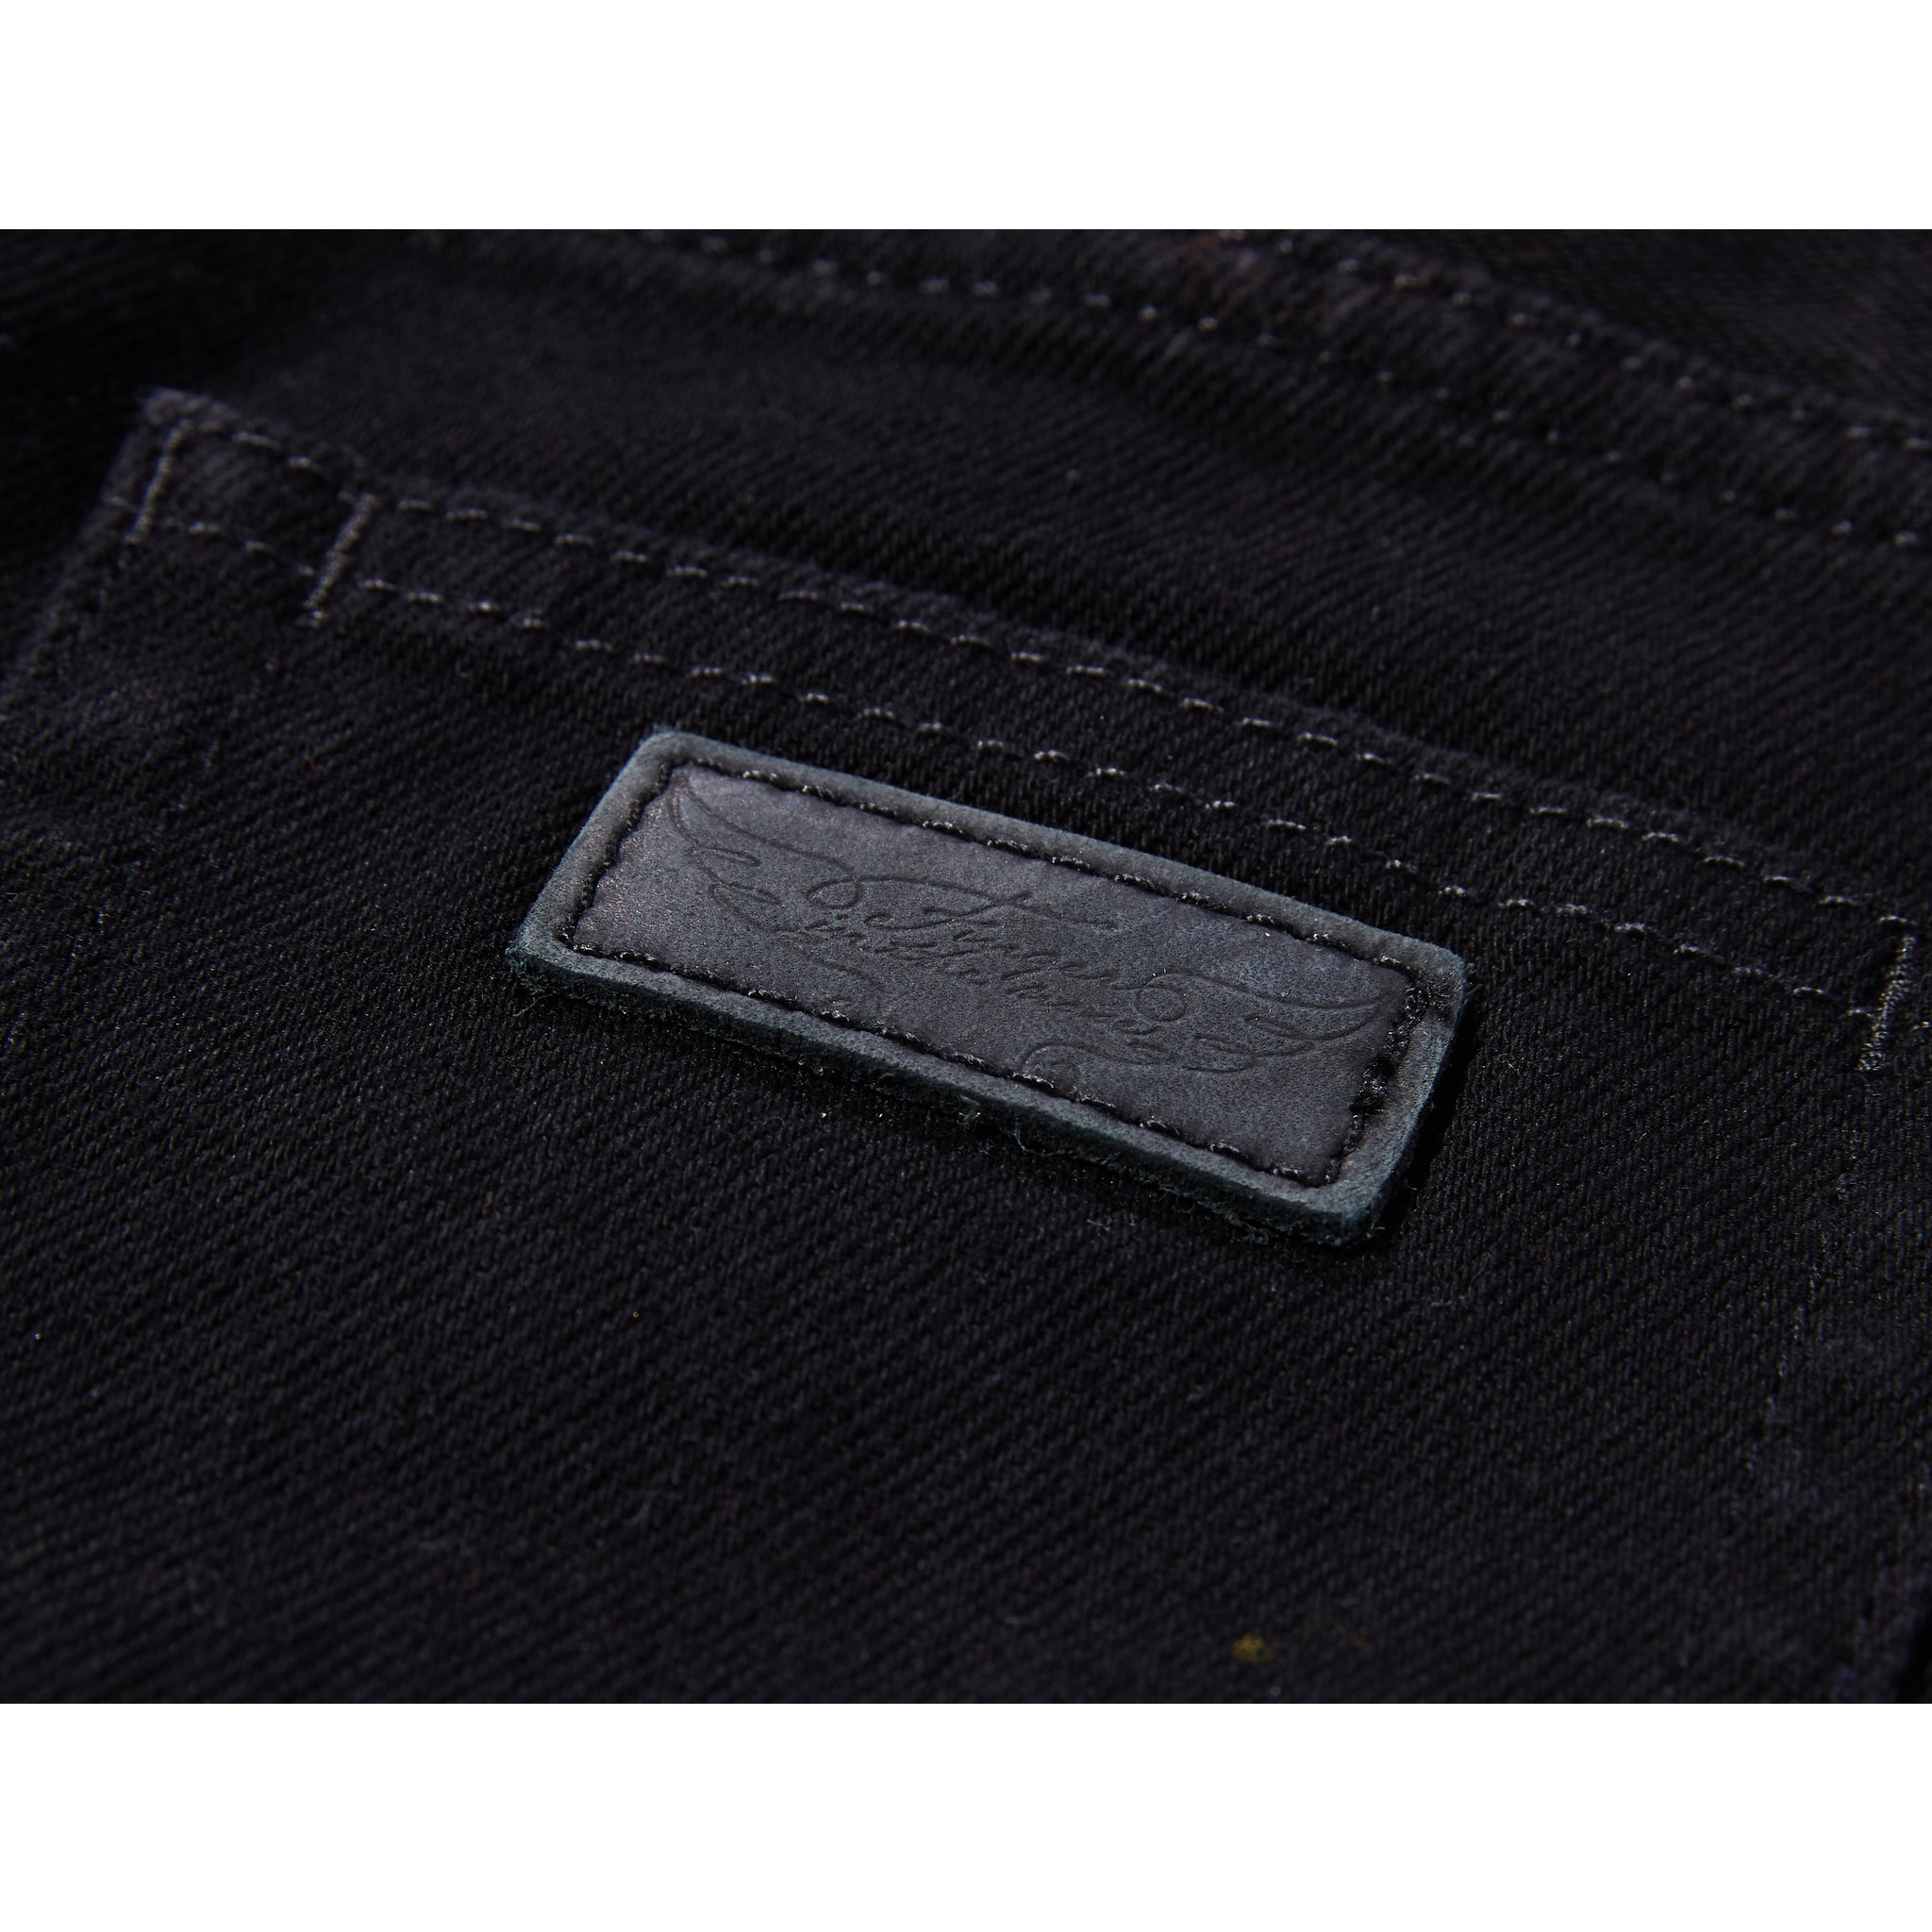 NEW NORTON Raw Black - 5 Pocket Straight Fit Jeans 5